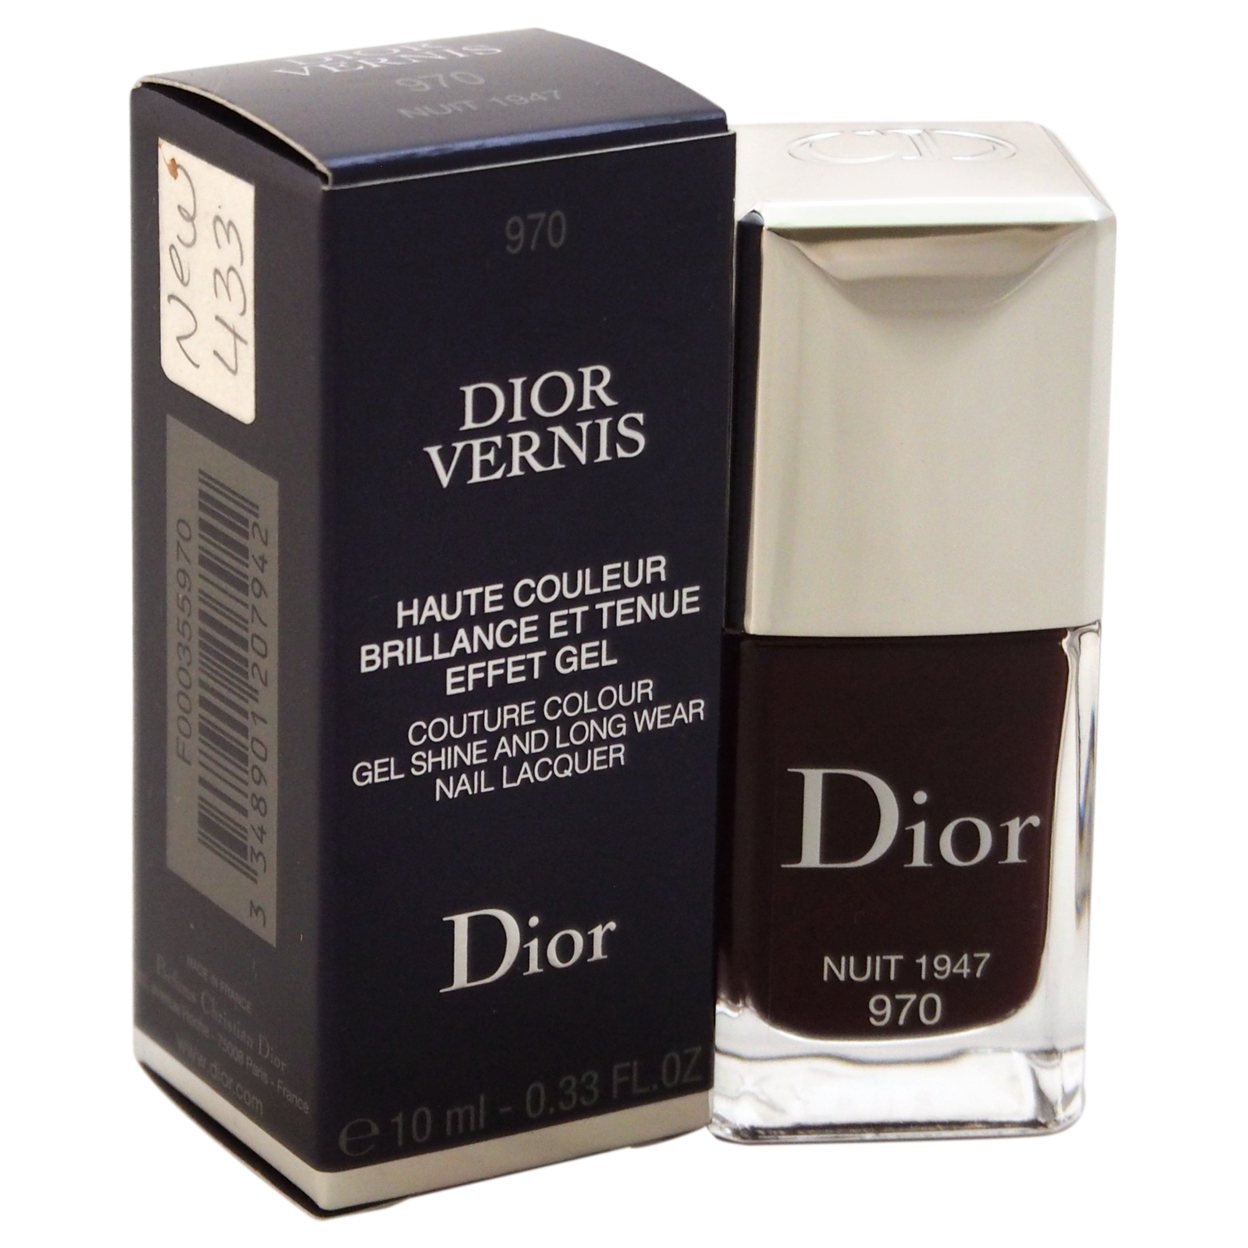 Dior Vernis Nail Lacquer - # 970 Nuit 1947 by Christian Dior for Women - 0.33 oz Nail Polish 58653c49e2246122df595ed6